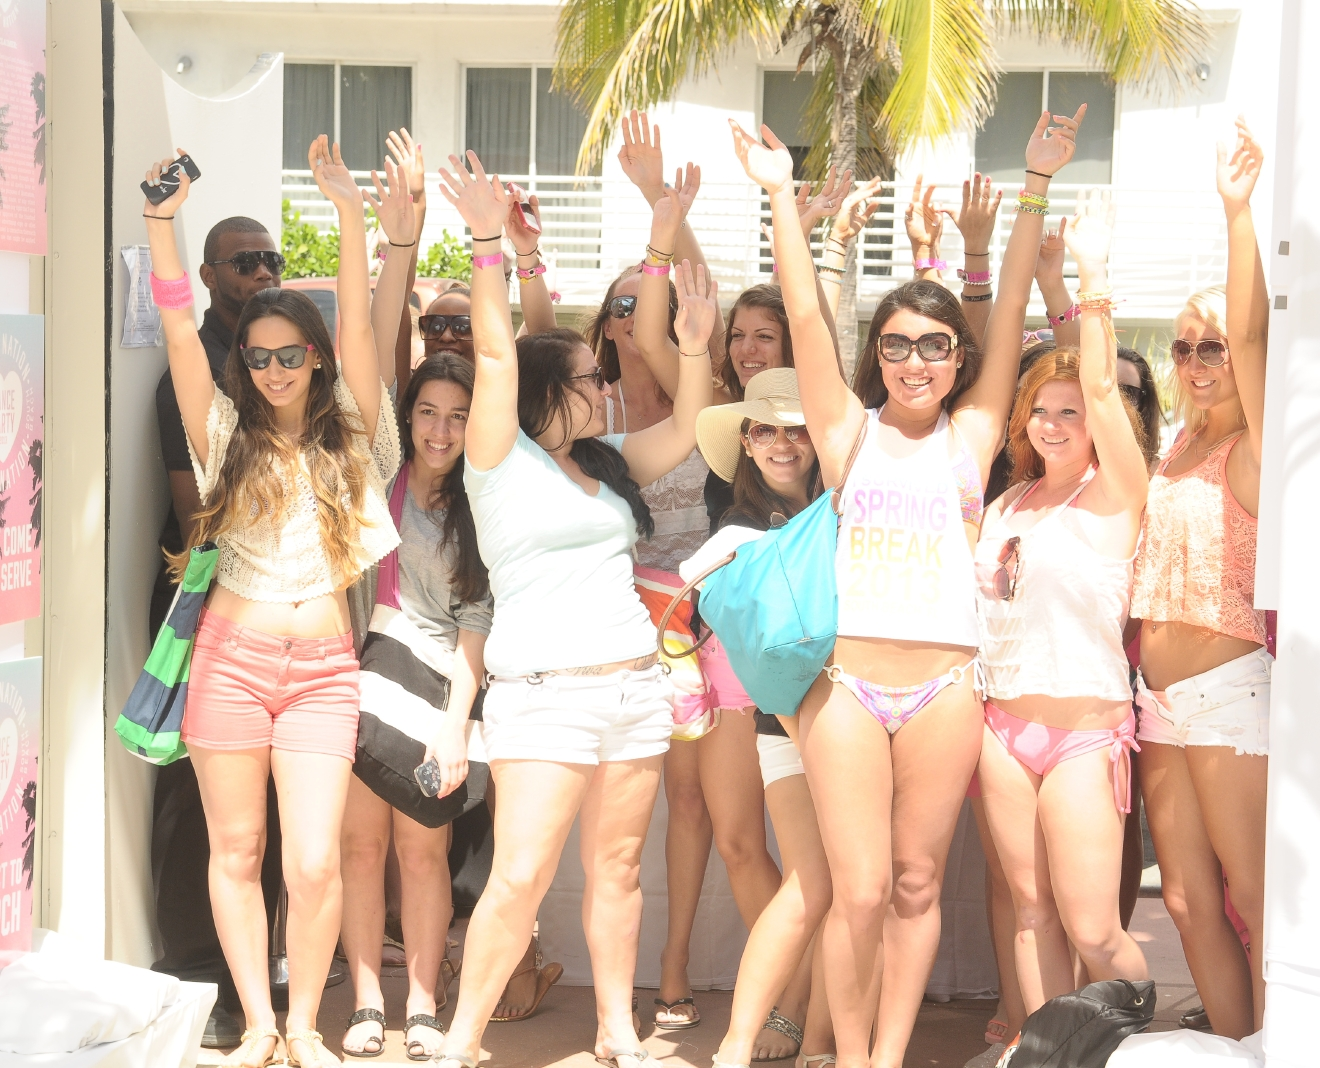 Victorias Secret PINK Brings The Ultimate Spring Break Dance Party Featuring Pink Nation